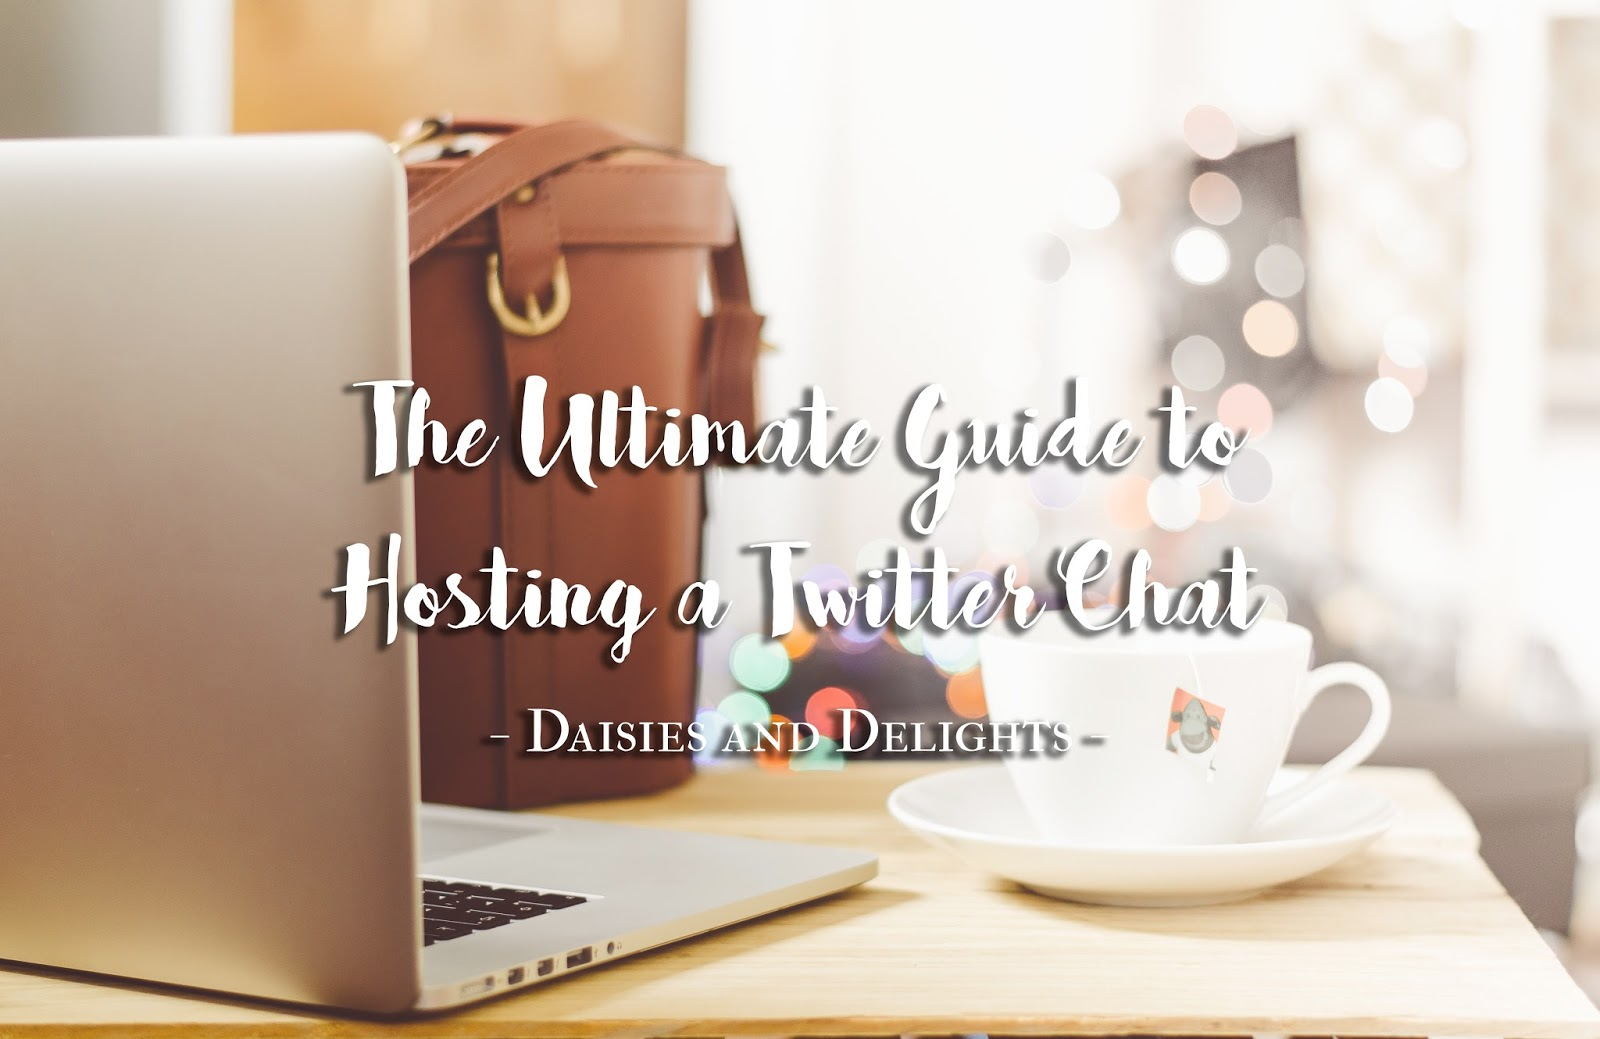 The Ultimate Guide to Hosting a Twitter Chat